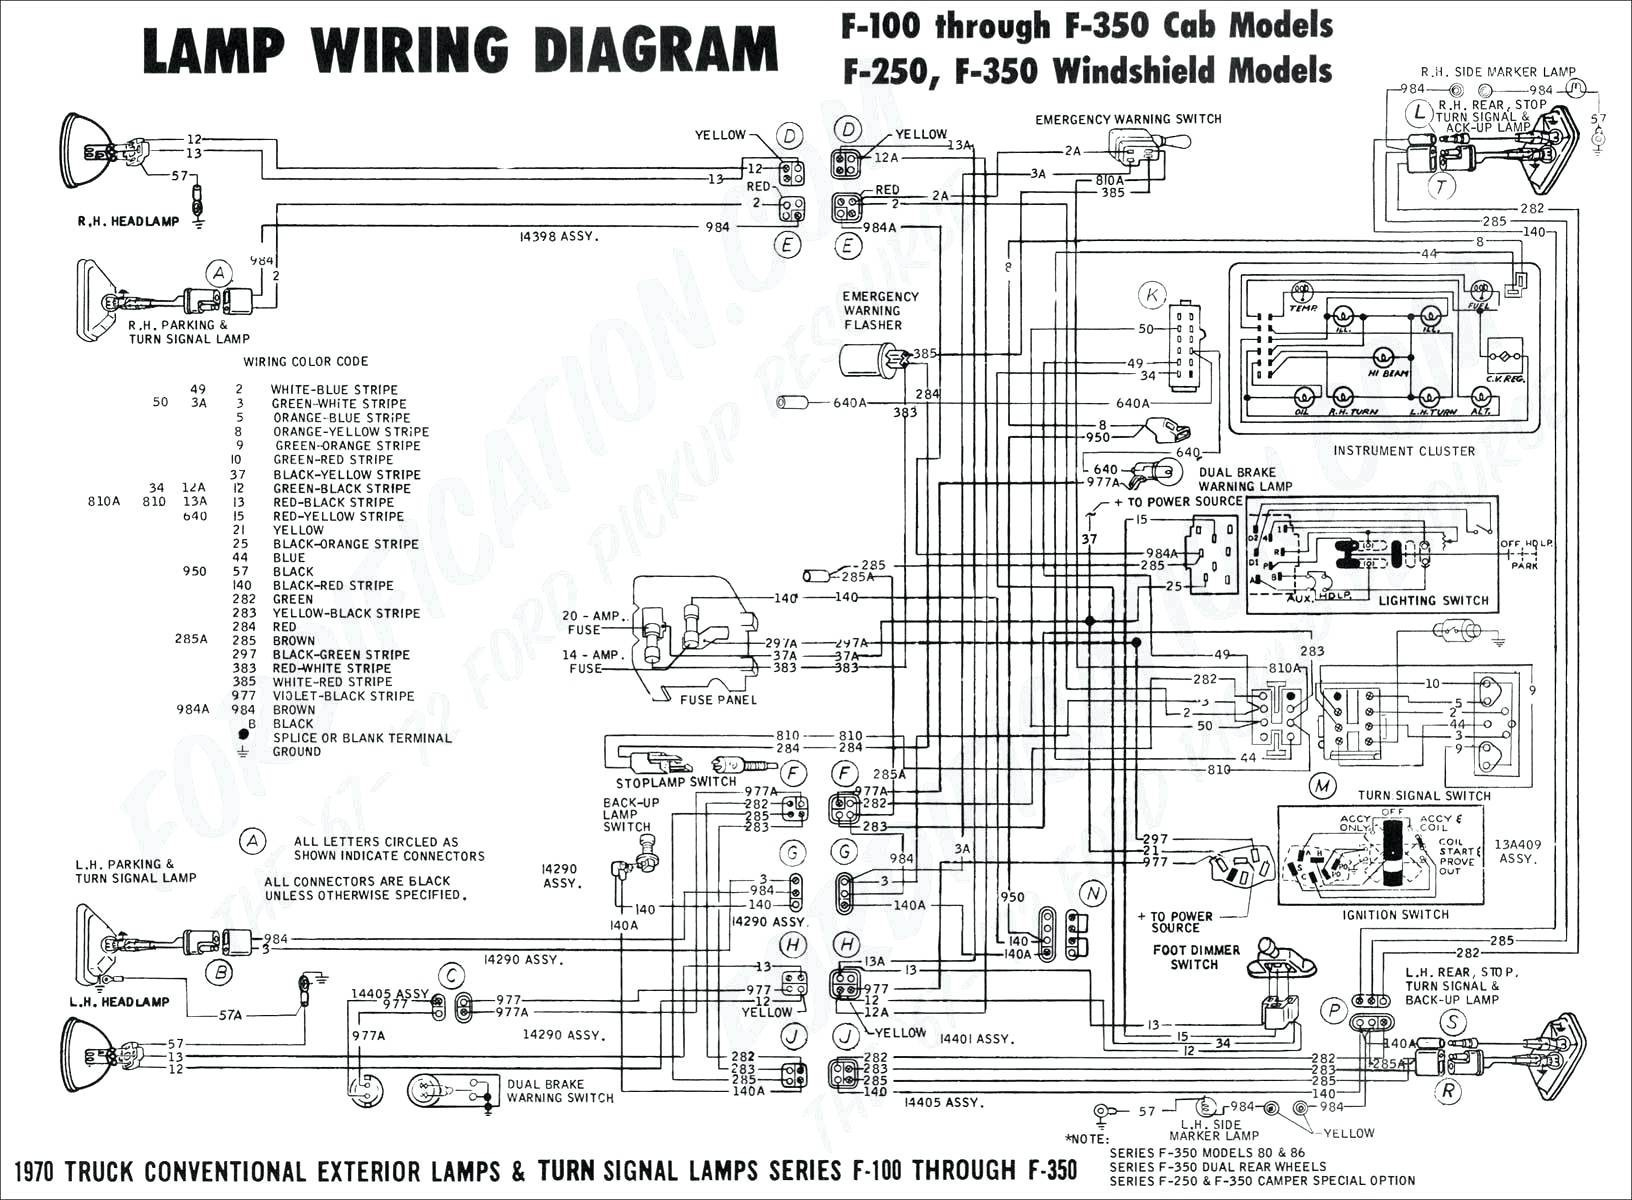 Power Transformer Wiring By Xpj11142 - Blog Wiring Diagrams on